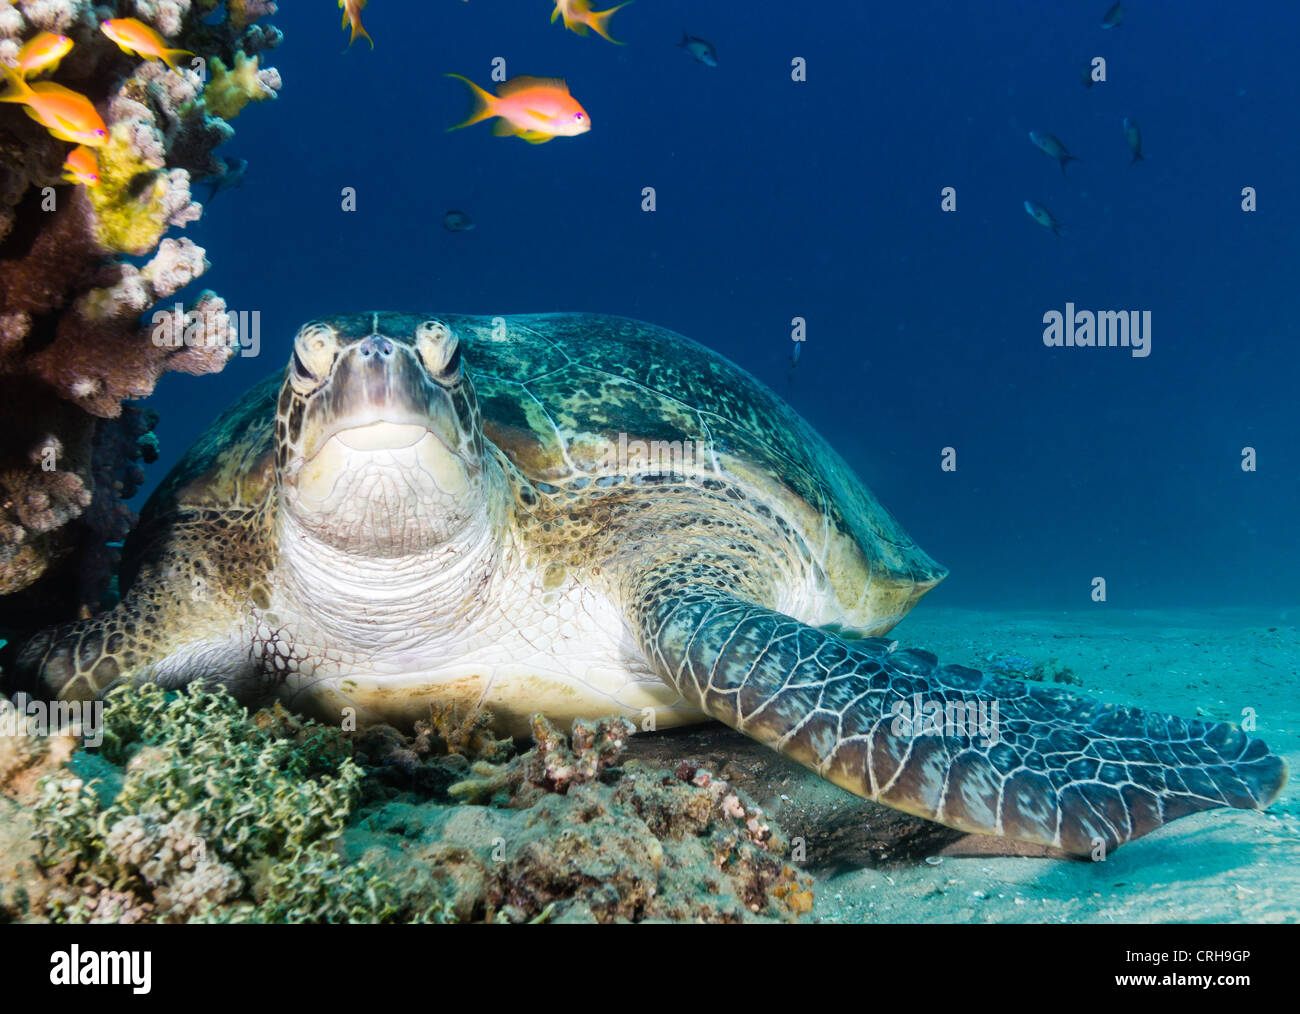 A curious Green Turtle looks directly towards the camera as it rests on the seabed next to a shallow coral pinnacle - Stock Image